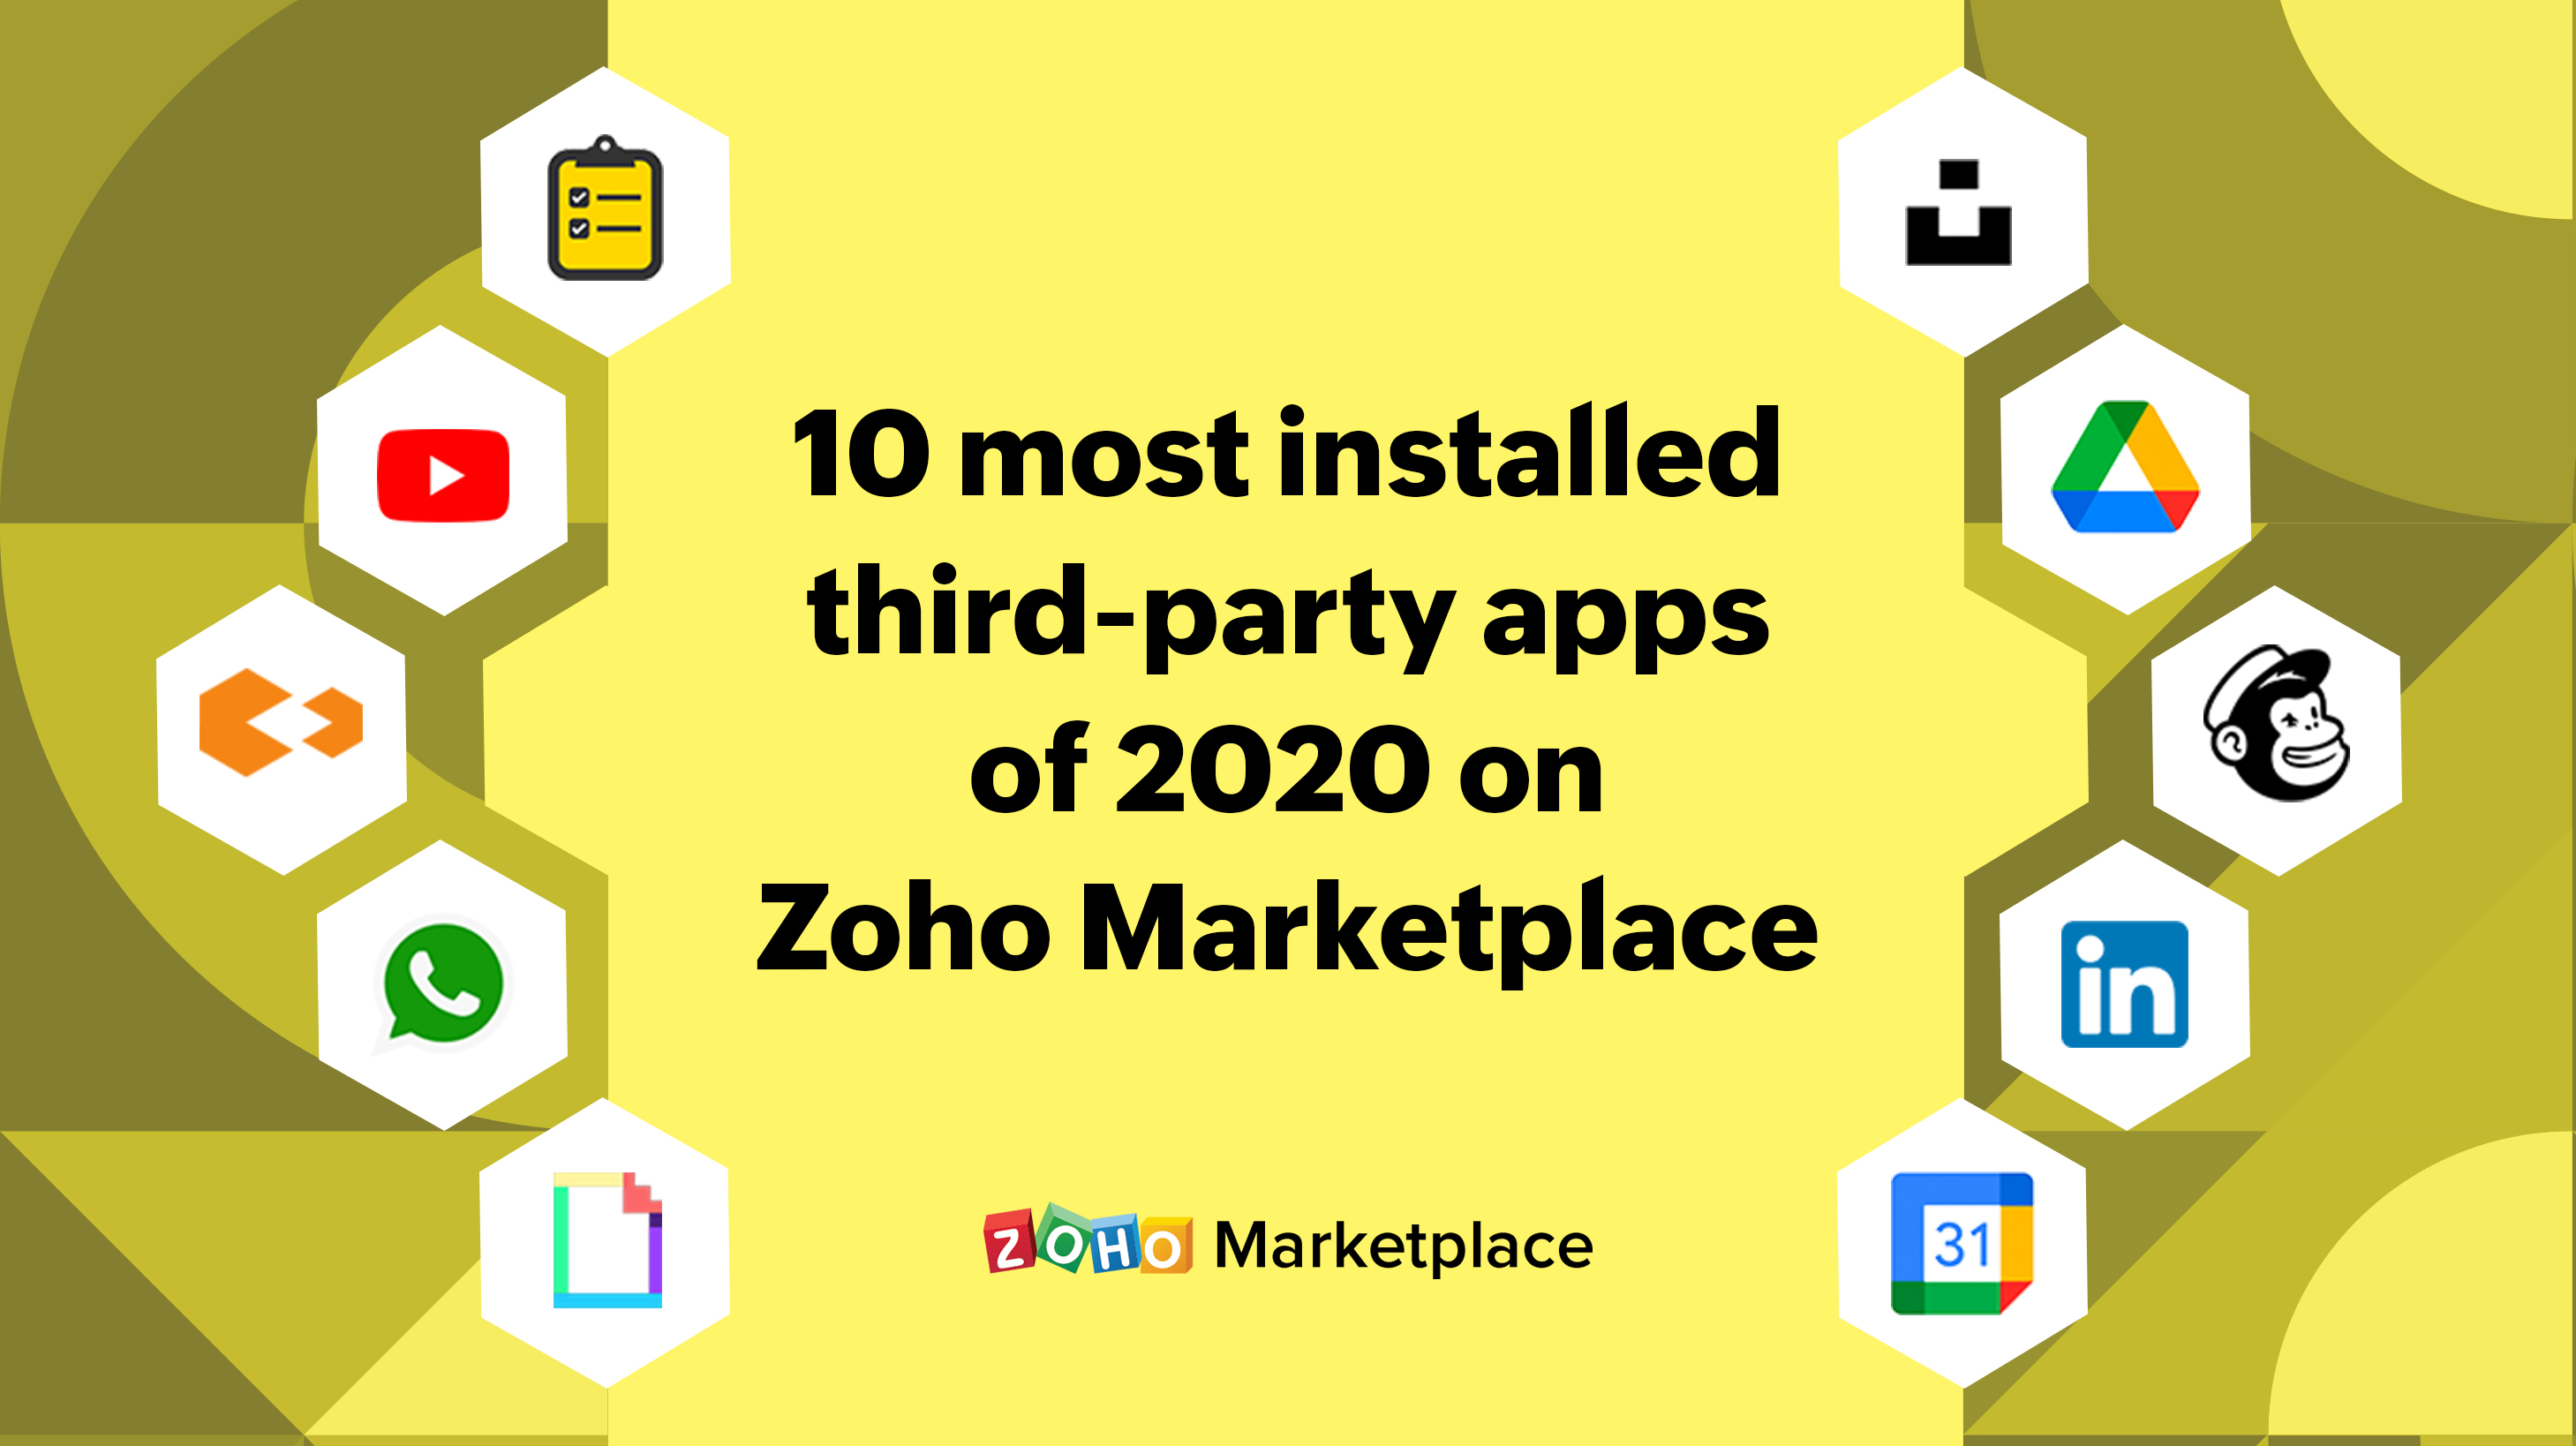 10 most installed third-party apps of 2020 on Zoho Marketplace